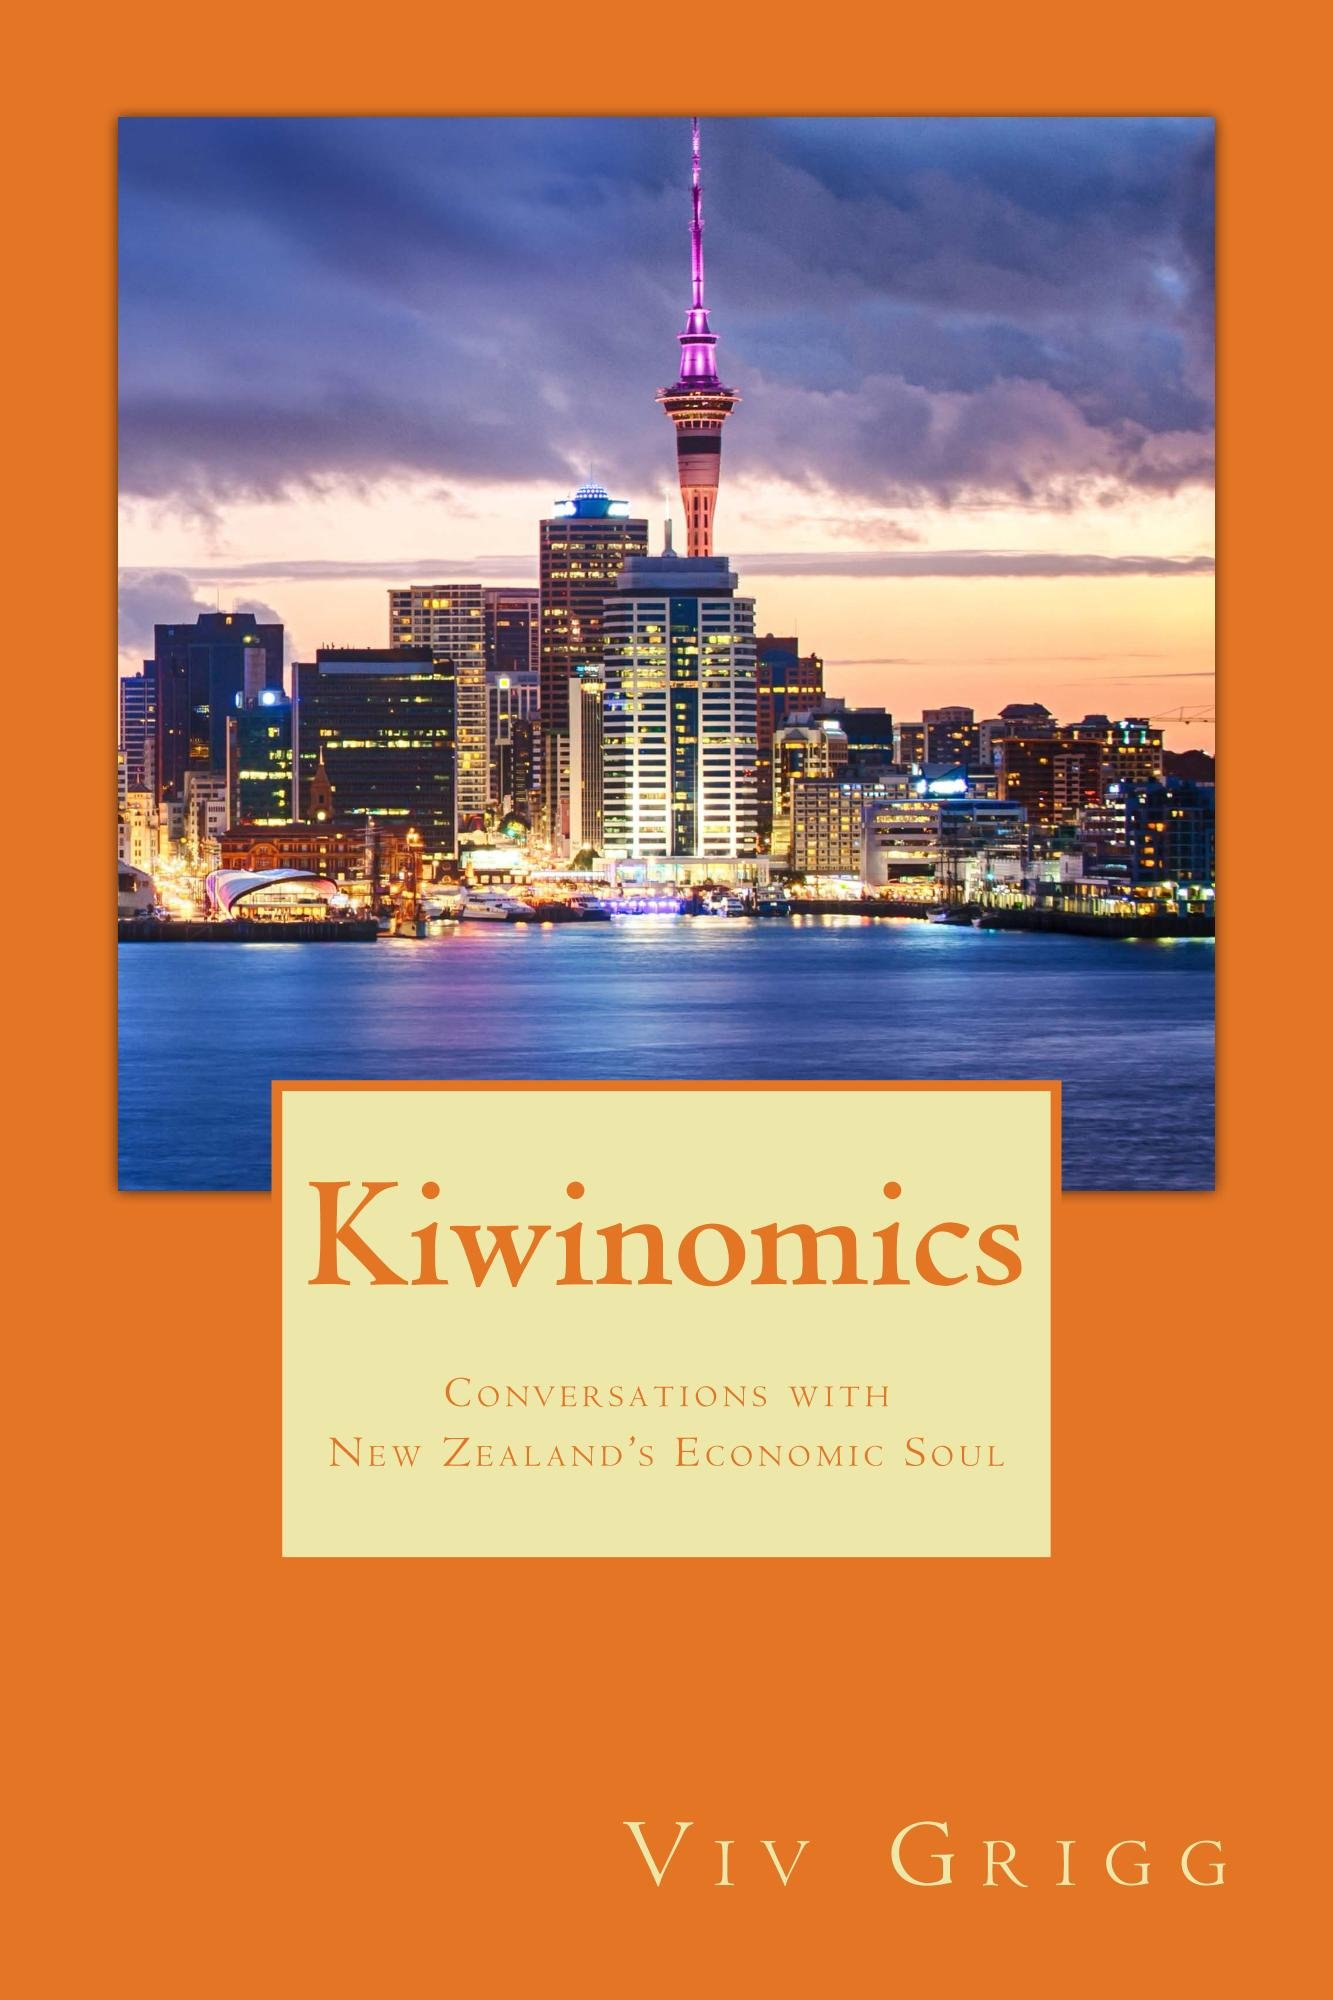 Kiwinomics: Conversations with New Zealand's Economic Soul